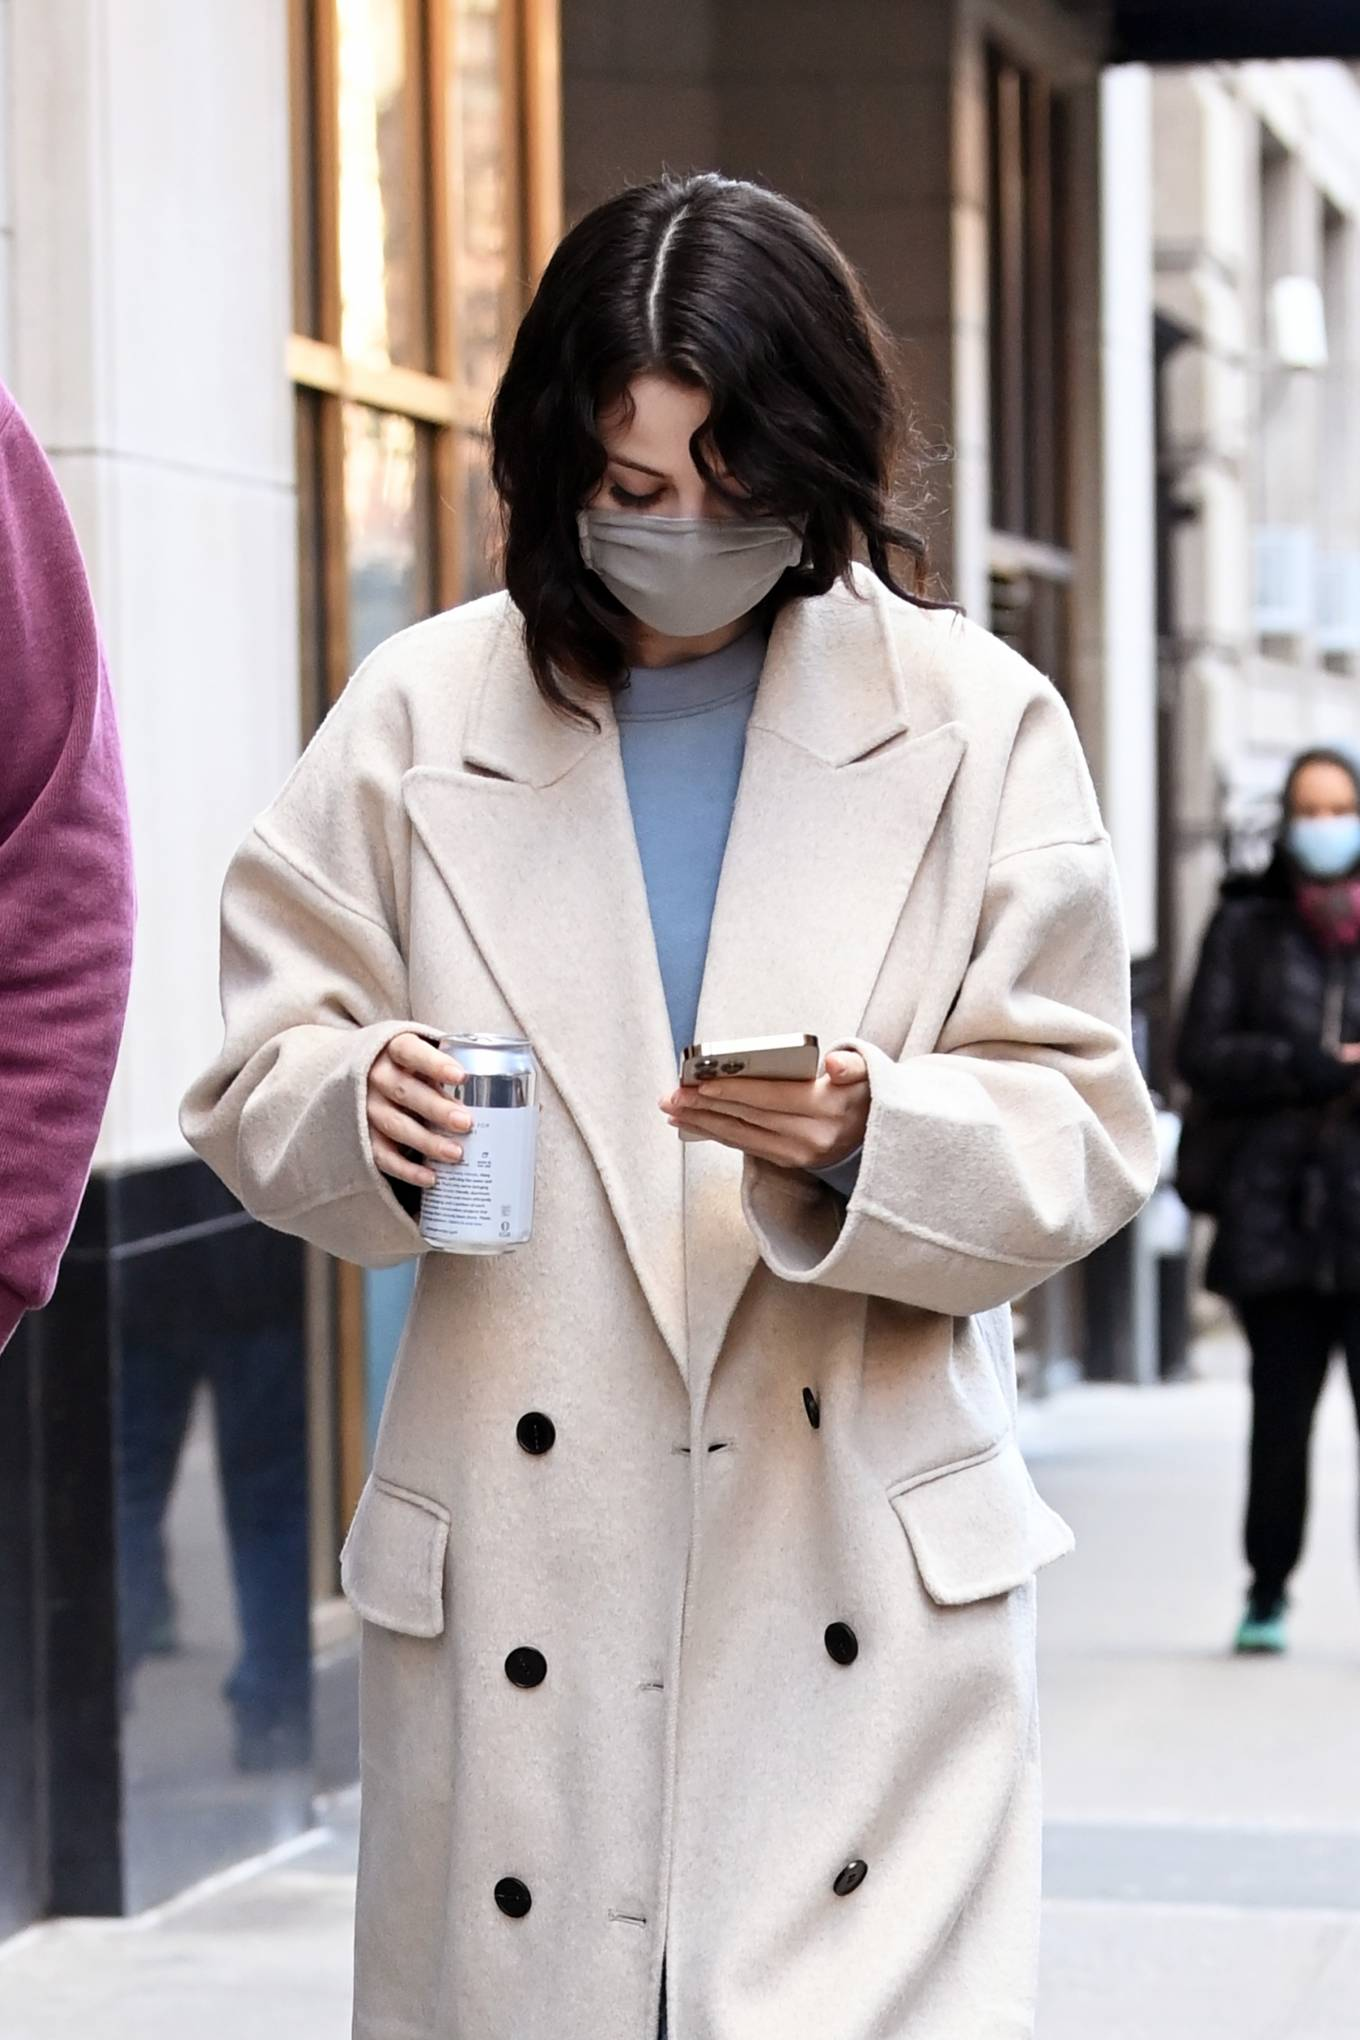 Selena Gomez - On the set of 'Only Murders in The Building' - New York City